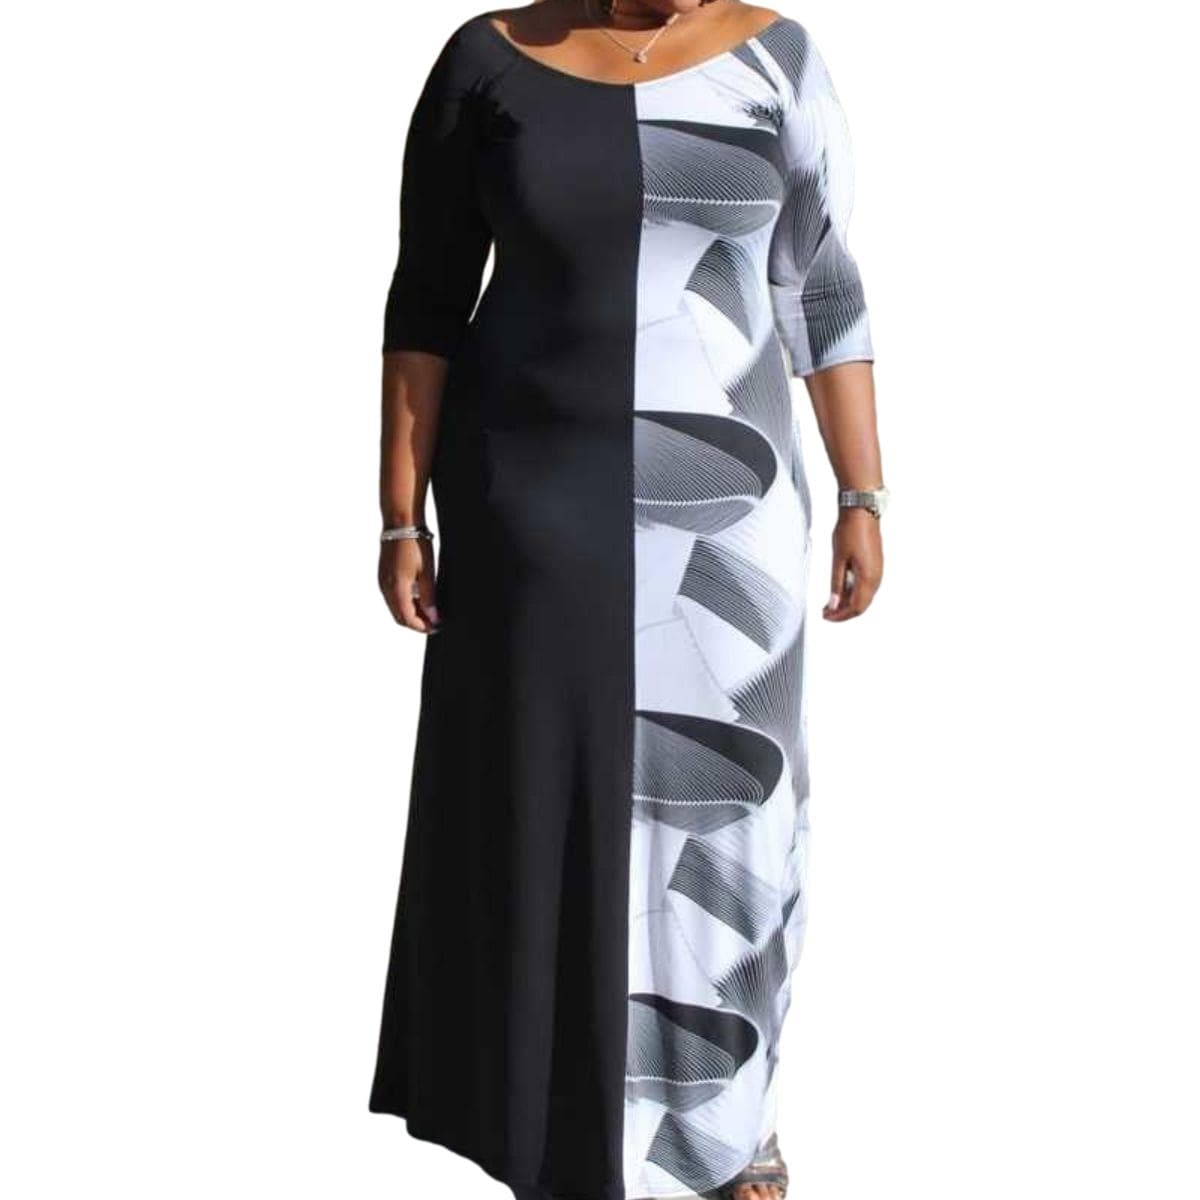 Maxi Color Block with Pockets - Posh Shoppe